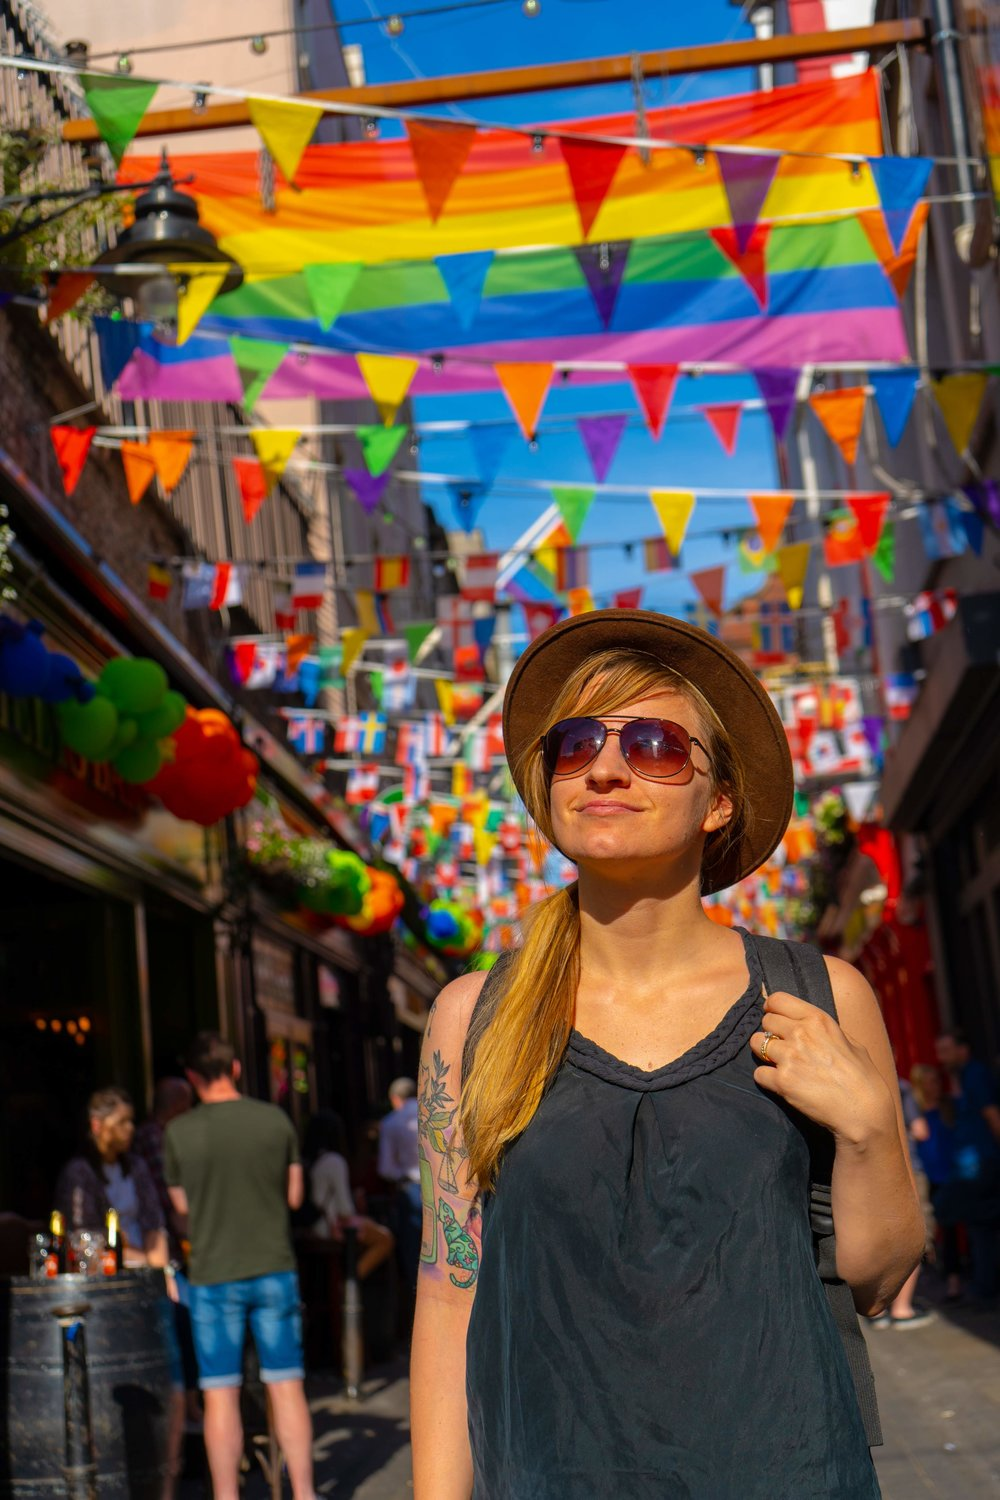 uprooted-traveler-dublin-vegan-guide-48-hours-temple-bar-lgbtq.jpg